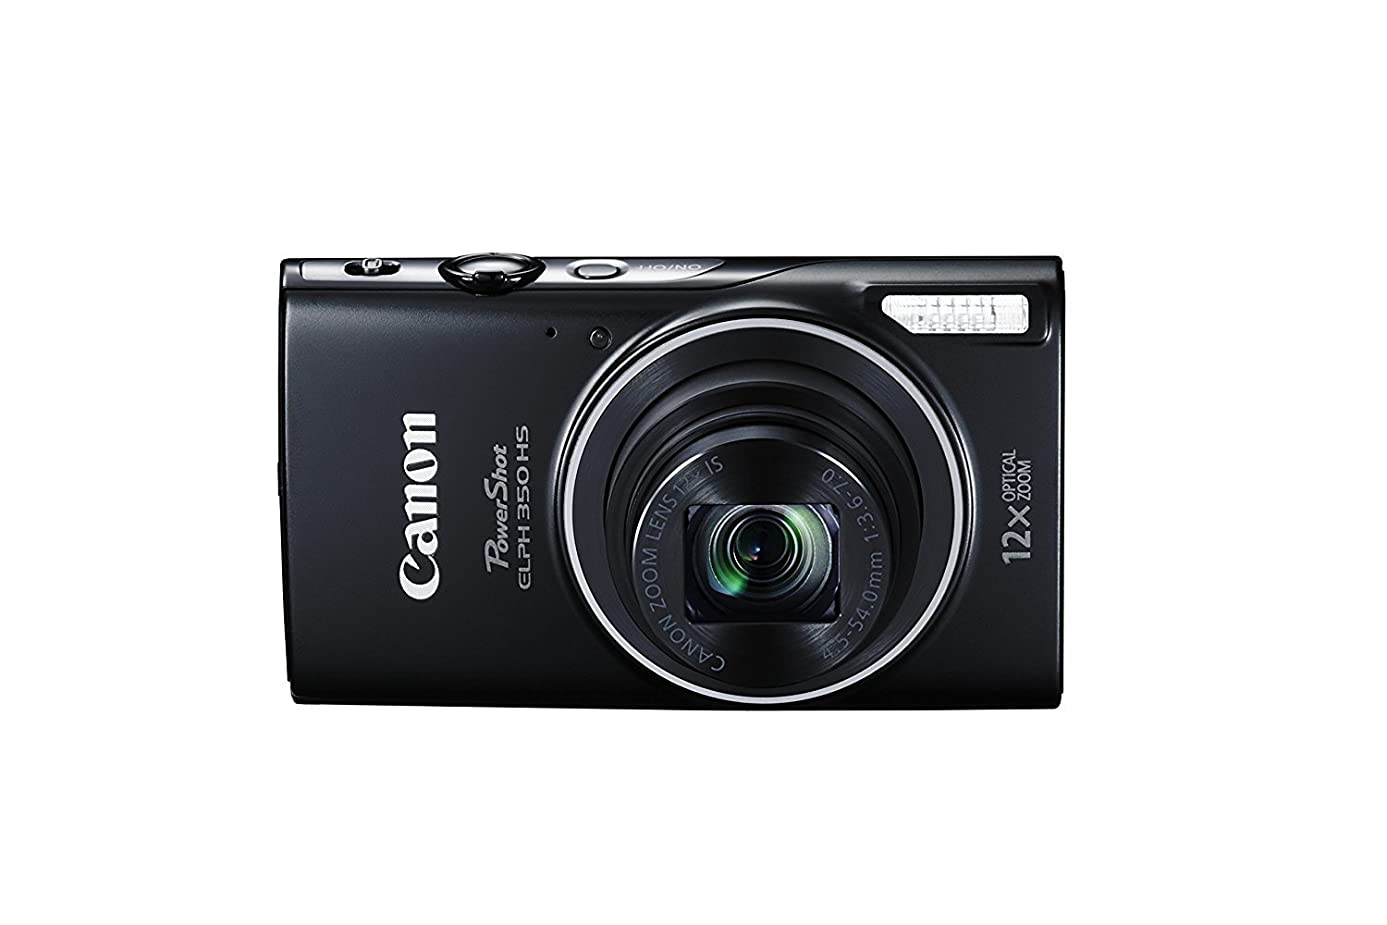 Canon PowerShot ELPH 350 HS 20.2 MP digital camera with 12x Optical Zoom (25–300mm), Built in NFC and WiFi, 1080P full HD video and 3.0 inch LCD (Renewed)